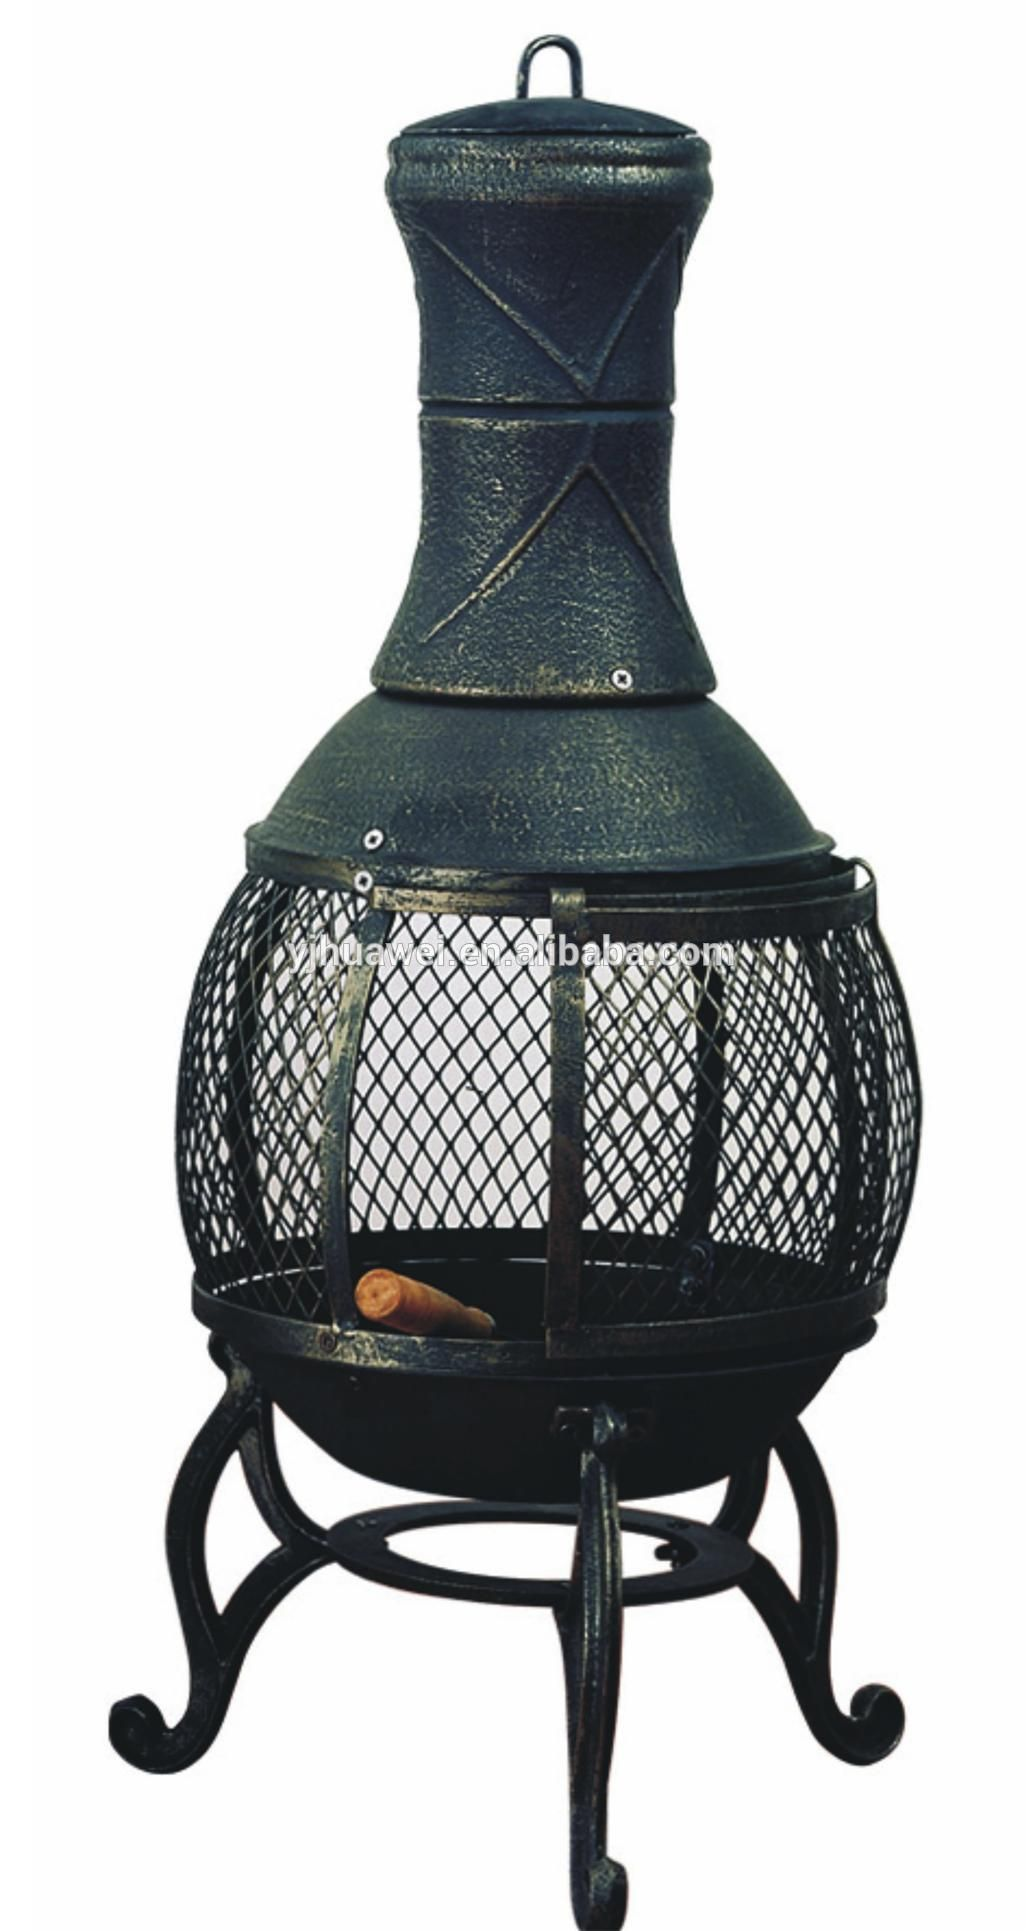 Chiminea Fire Pit Lowes images Chiminea fire pit, Fire